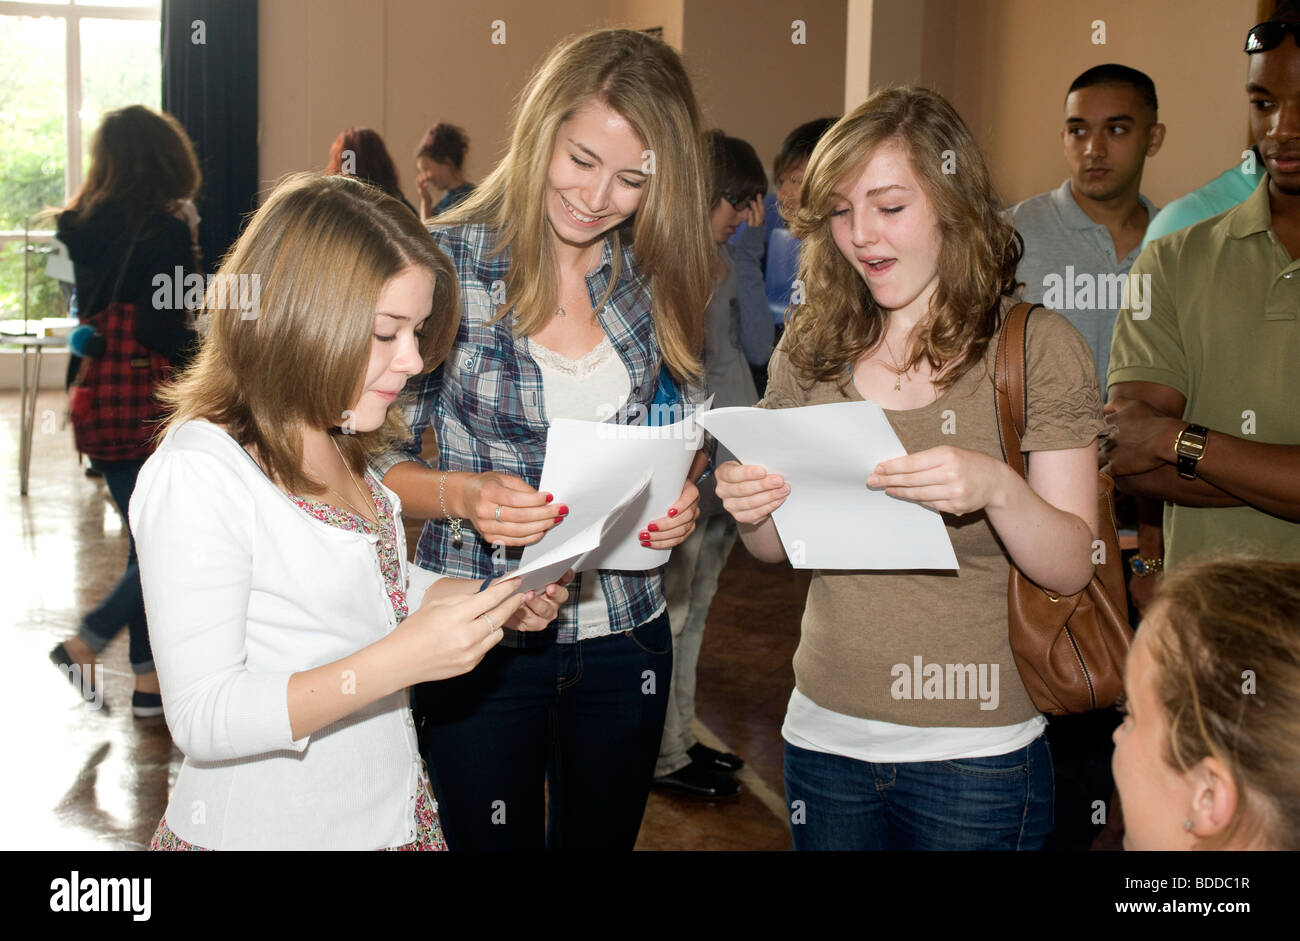 Three teenage girls looking happy with their GCSE A Level exam results - Stock Image